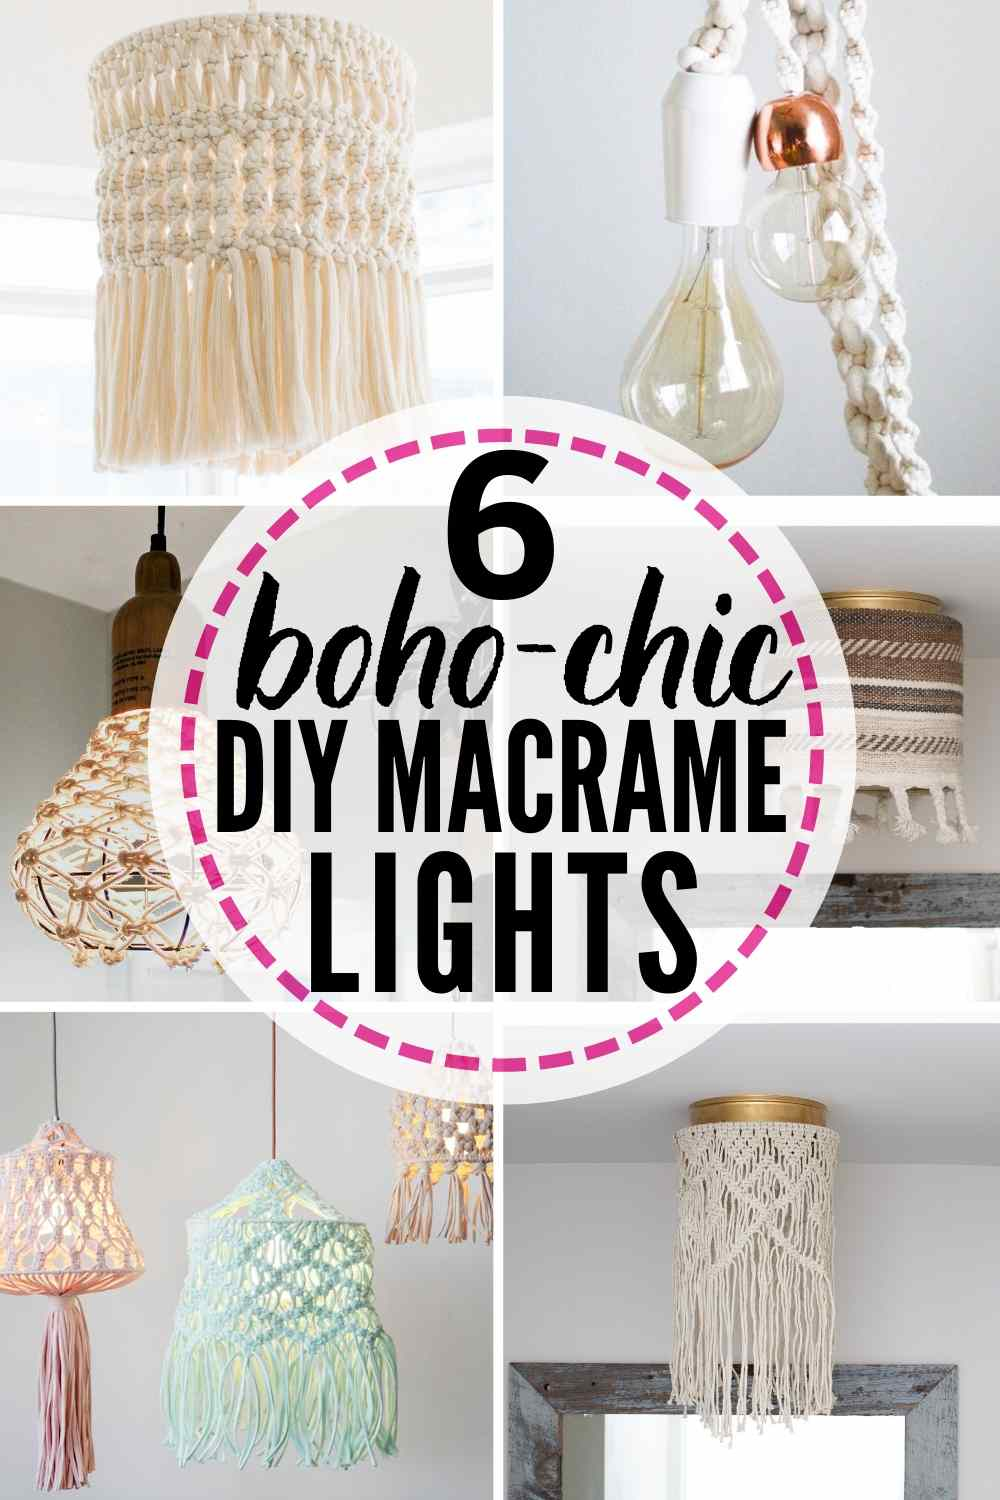 6 boho-chic DIY macrame lights to try!